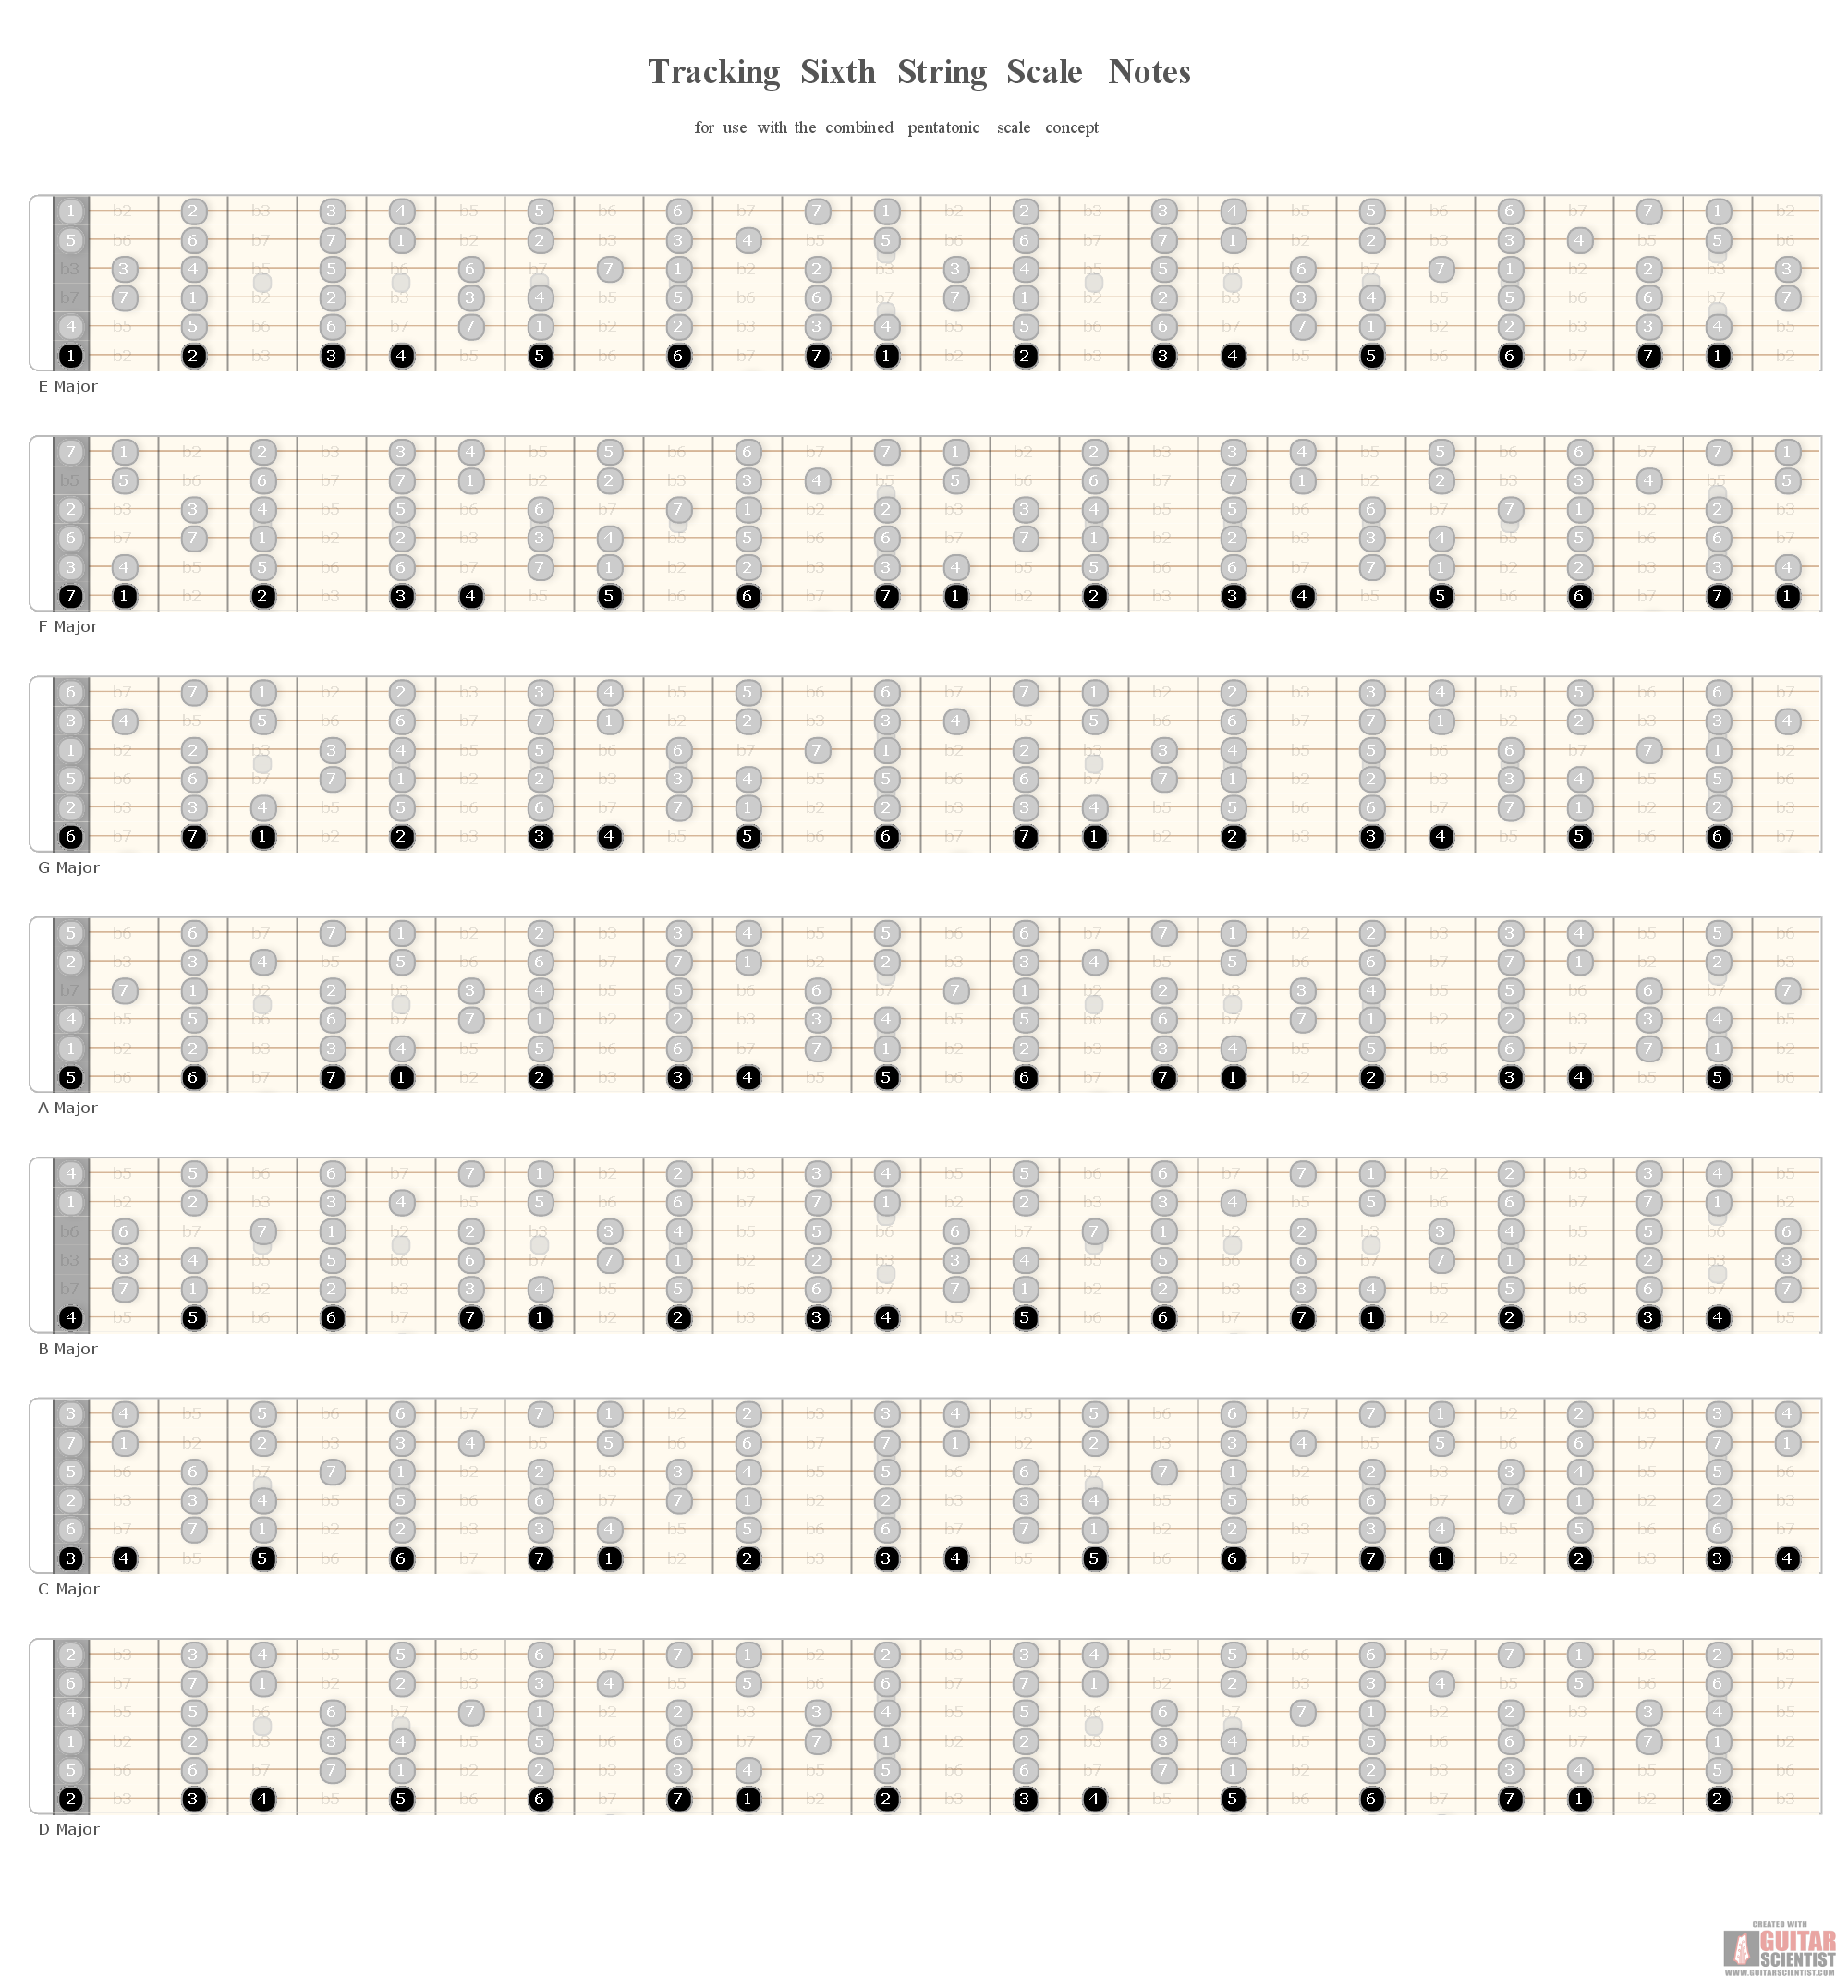 Tracking sixth string scale notes guitar scientist download this diagram png 2000x2152 pooptronica Images